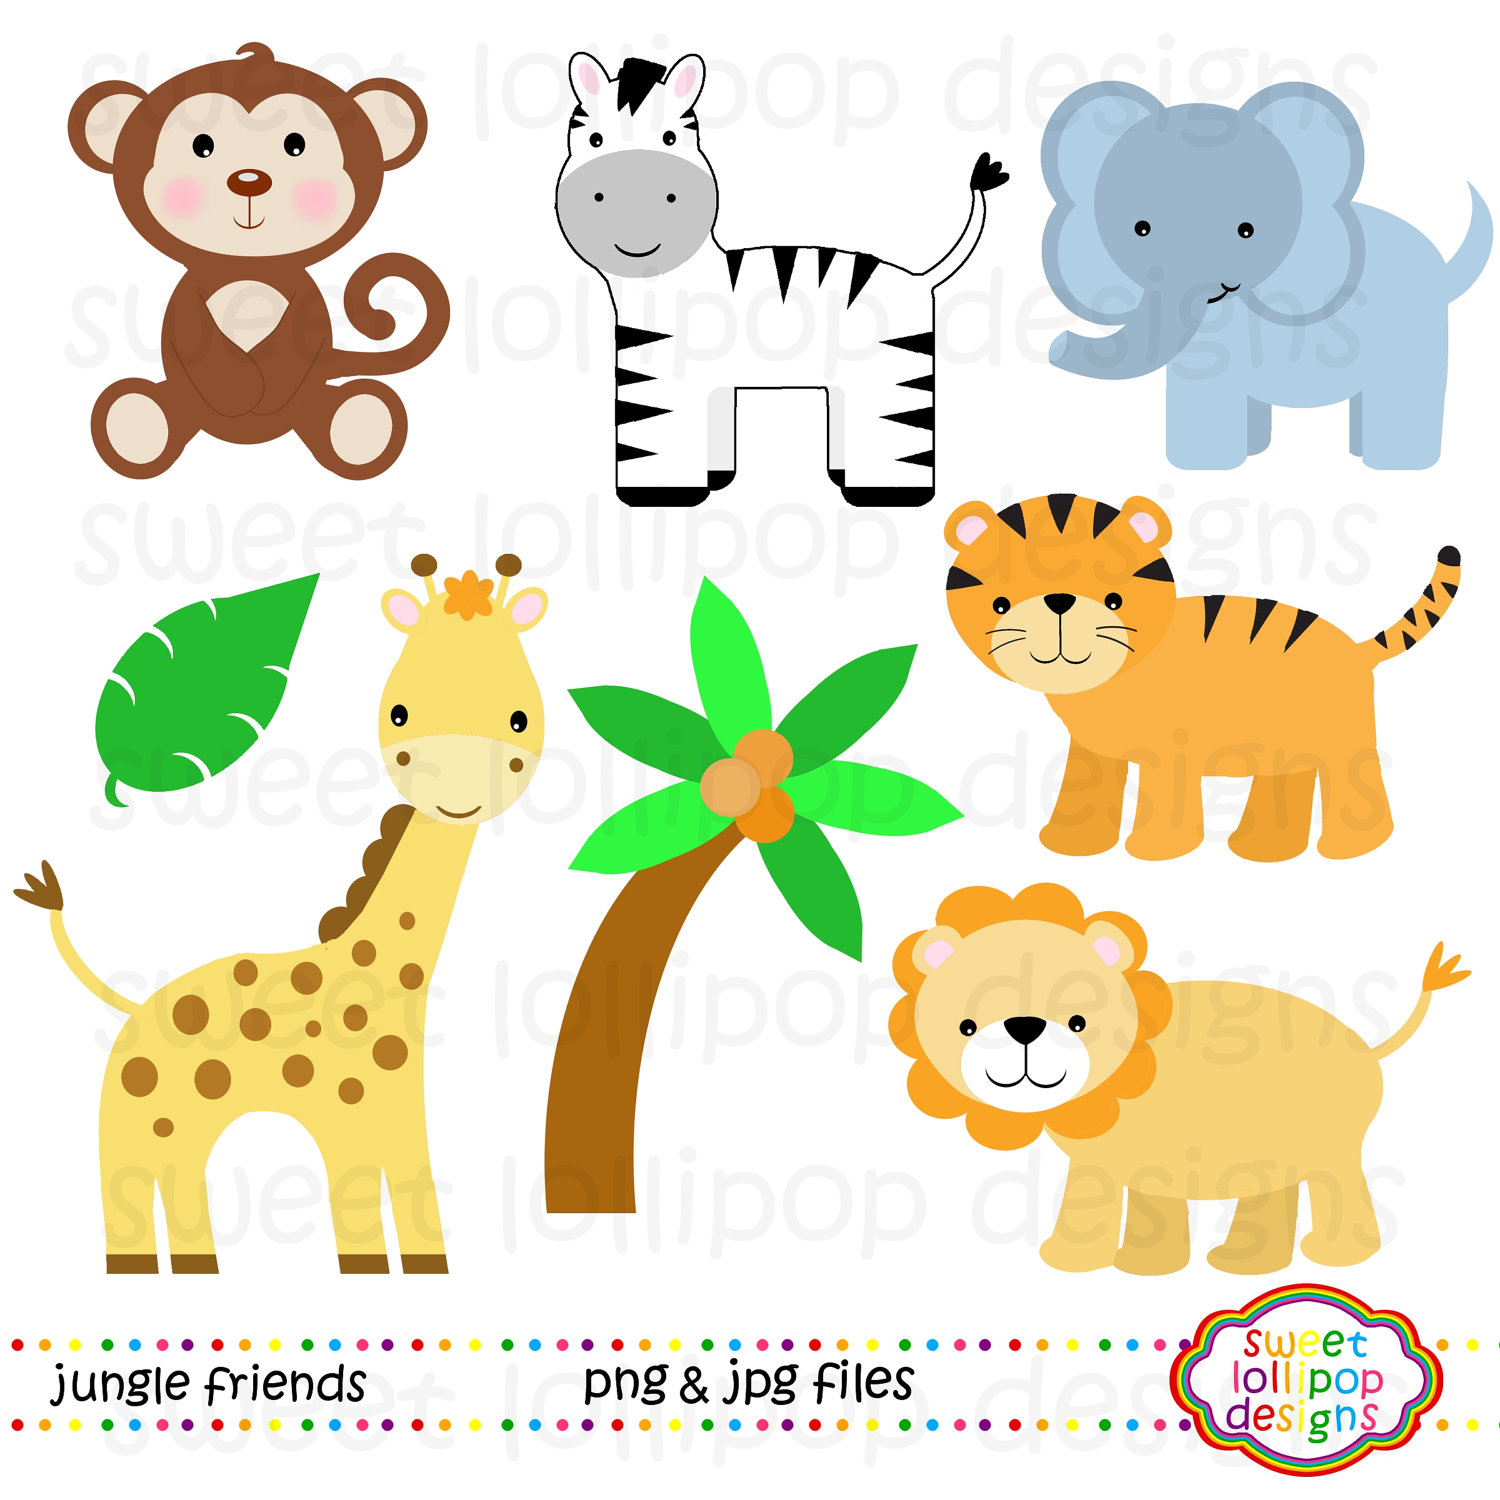 Baby Jungle Animal Free Vector Download clipart free image.